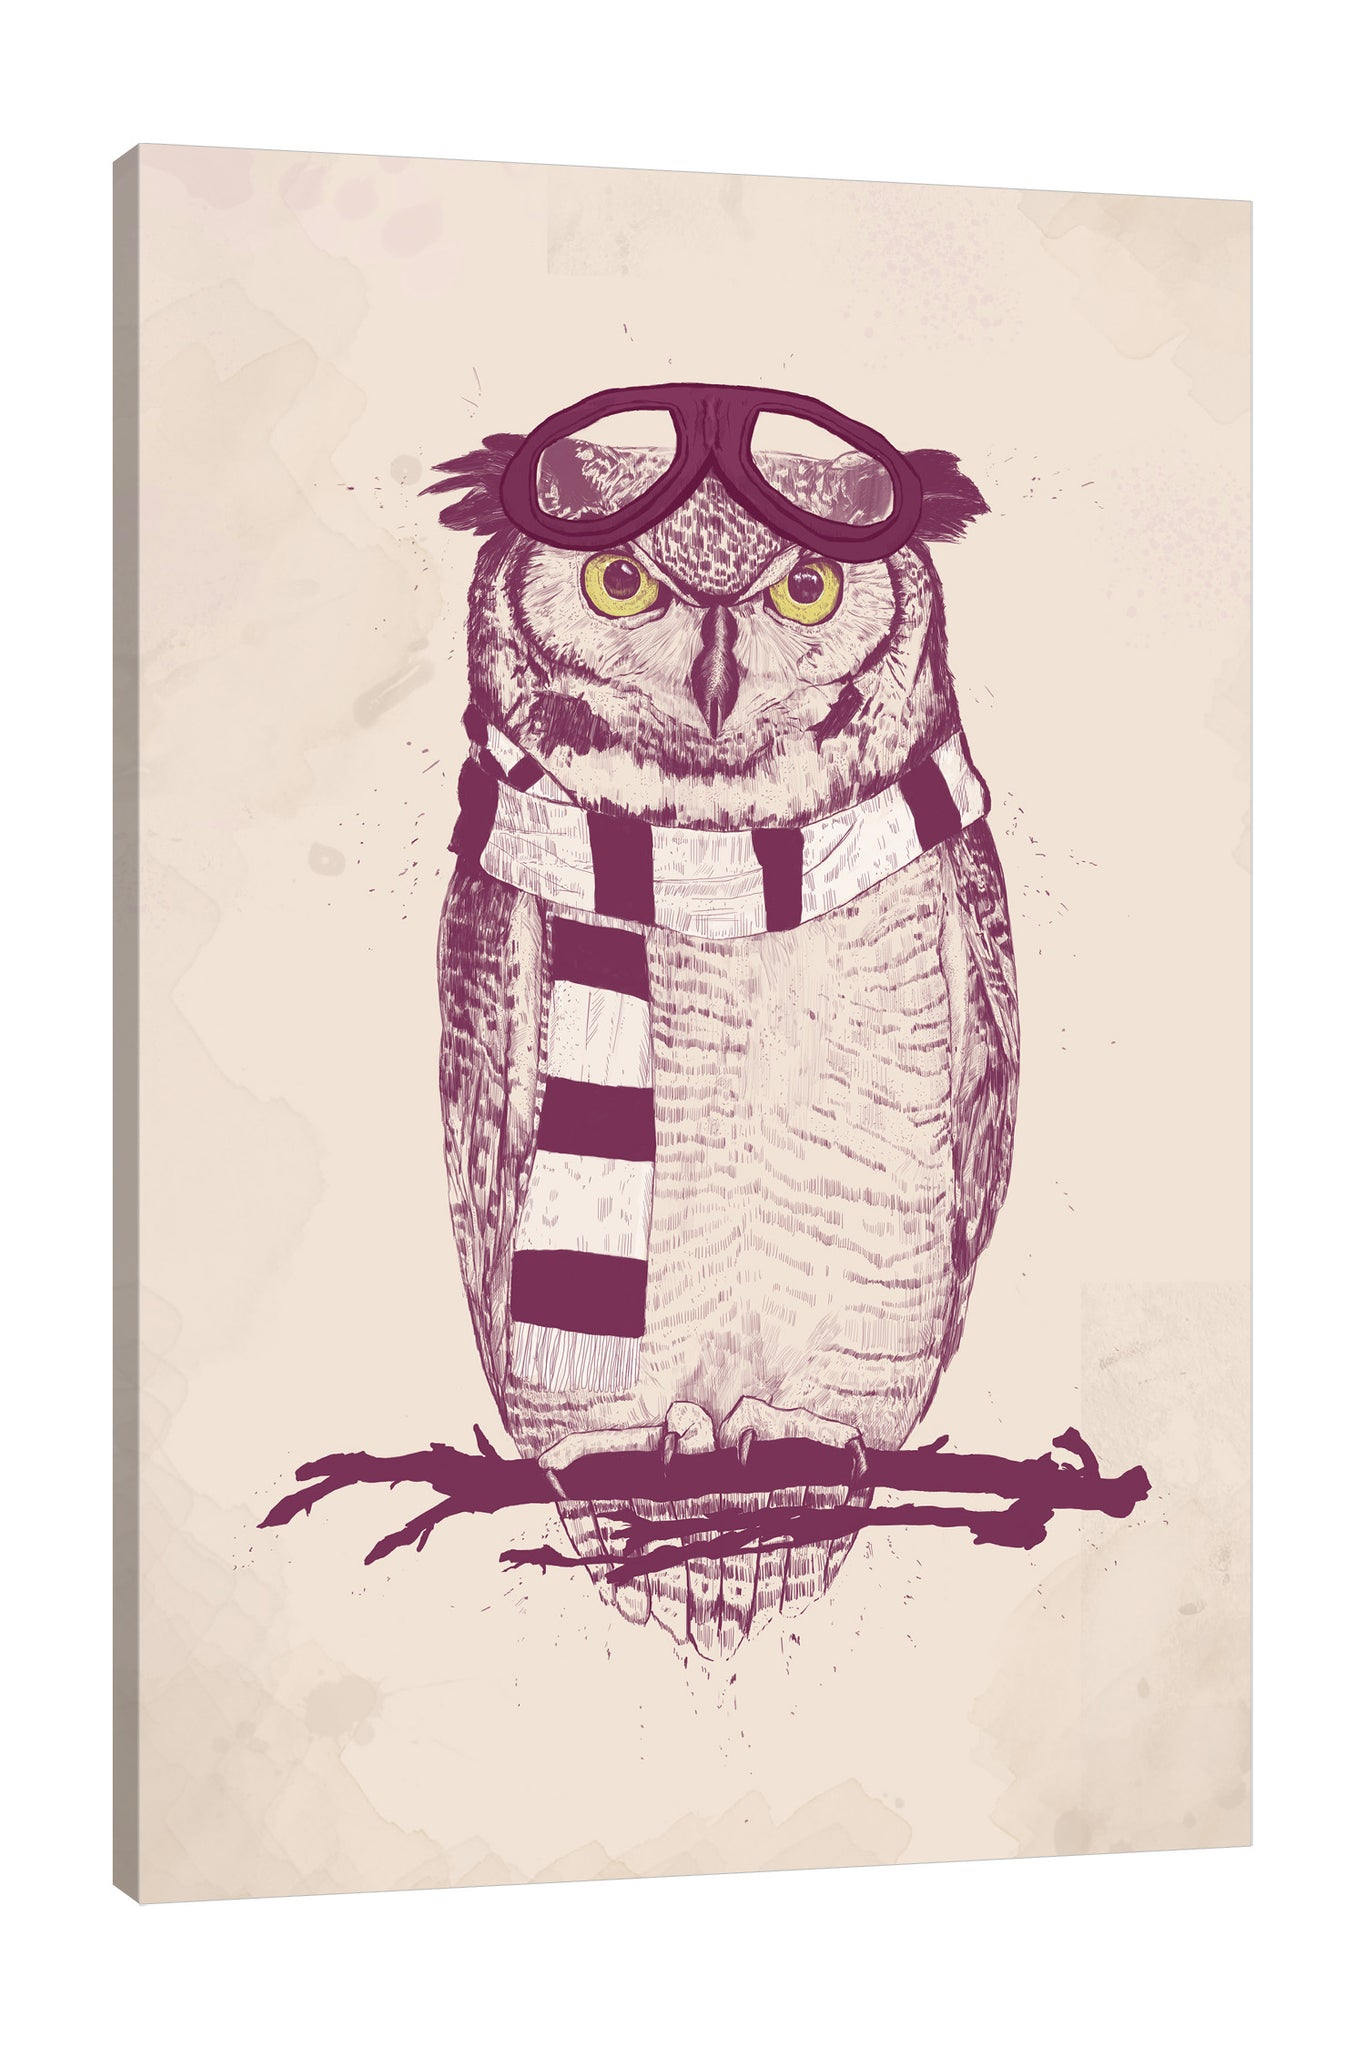 Balazs-Solti,Modern & Contemporary,Animals,animals,animal,owl,owls,aviator,aviators,stripes,stripe,cream,beige,black,Mist Gray,White,Blue,Pale Green,Gray,Steel Blue